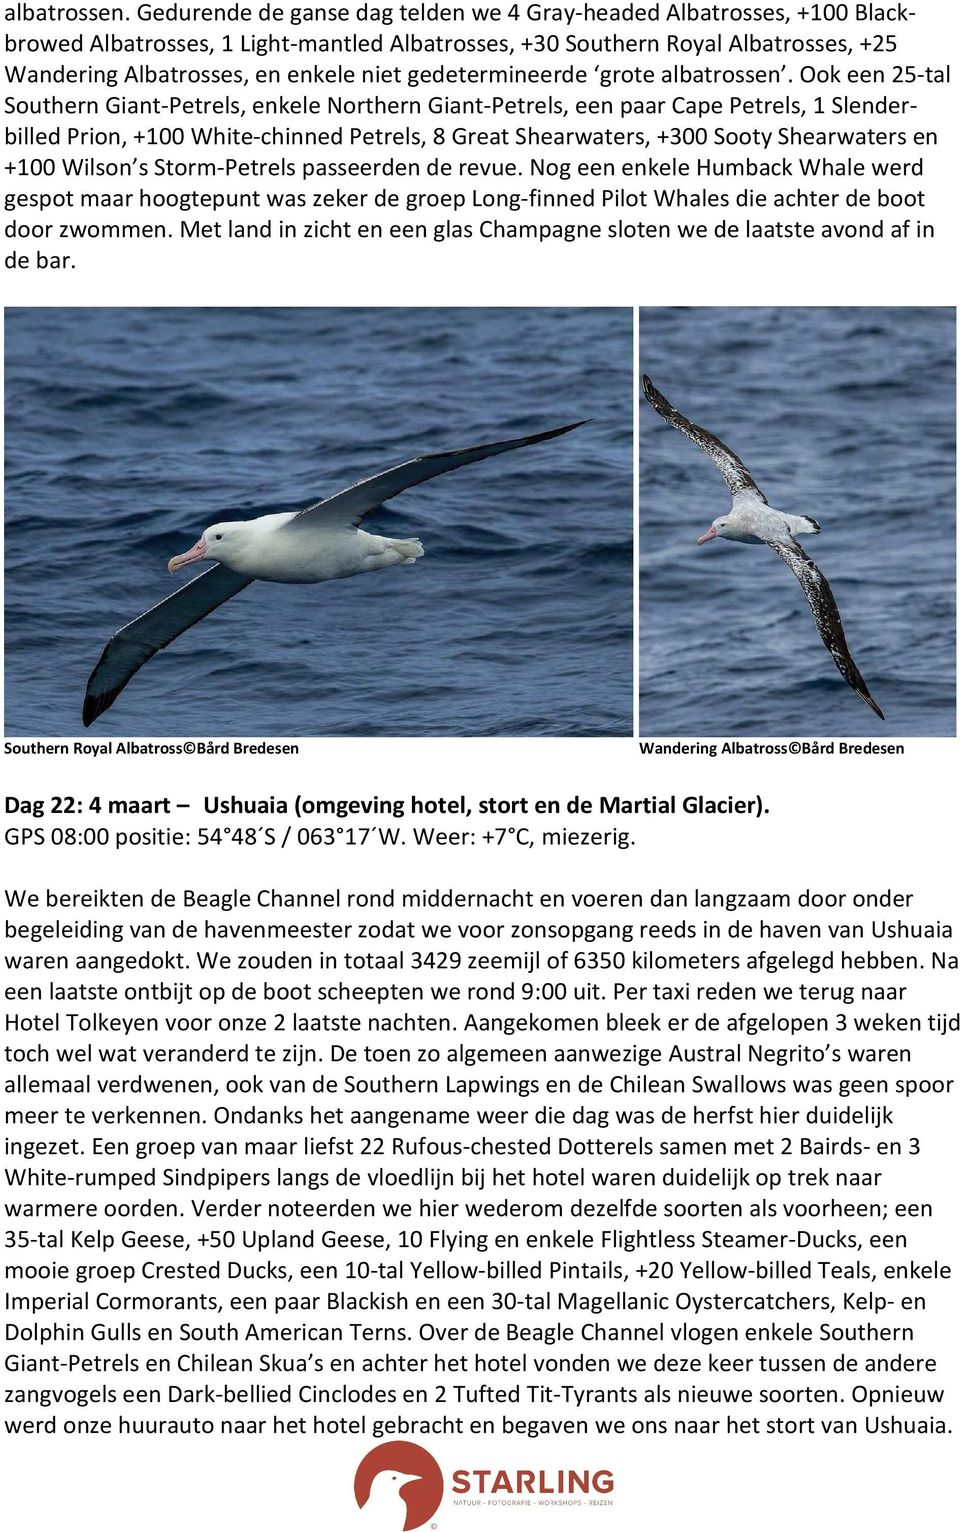 gedetermineerde grote  Ook een 25-tal Southern Giant-Petrels, enkele Northern Giant-Petrels, een paar Cape Petrels, 1 Slenderbilled Prion, +100 White-chinned Petrels, 8 Great Shearwaters, +300 Sooty